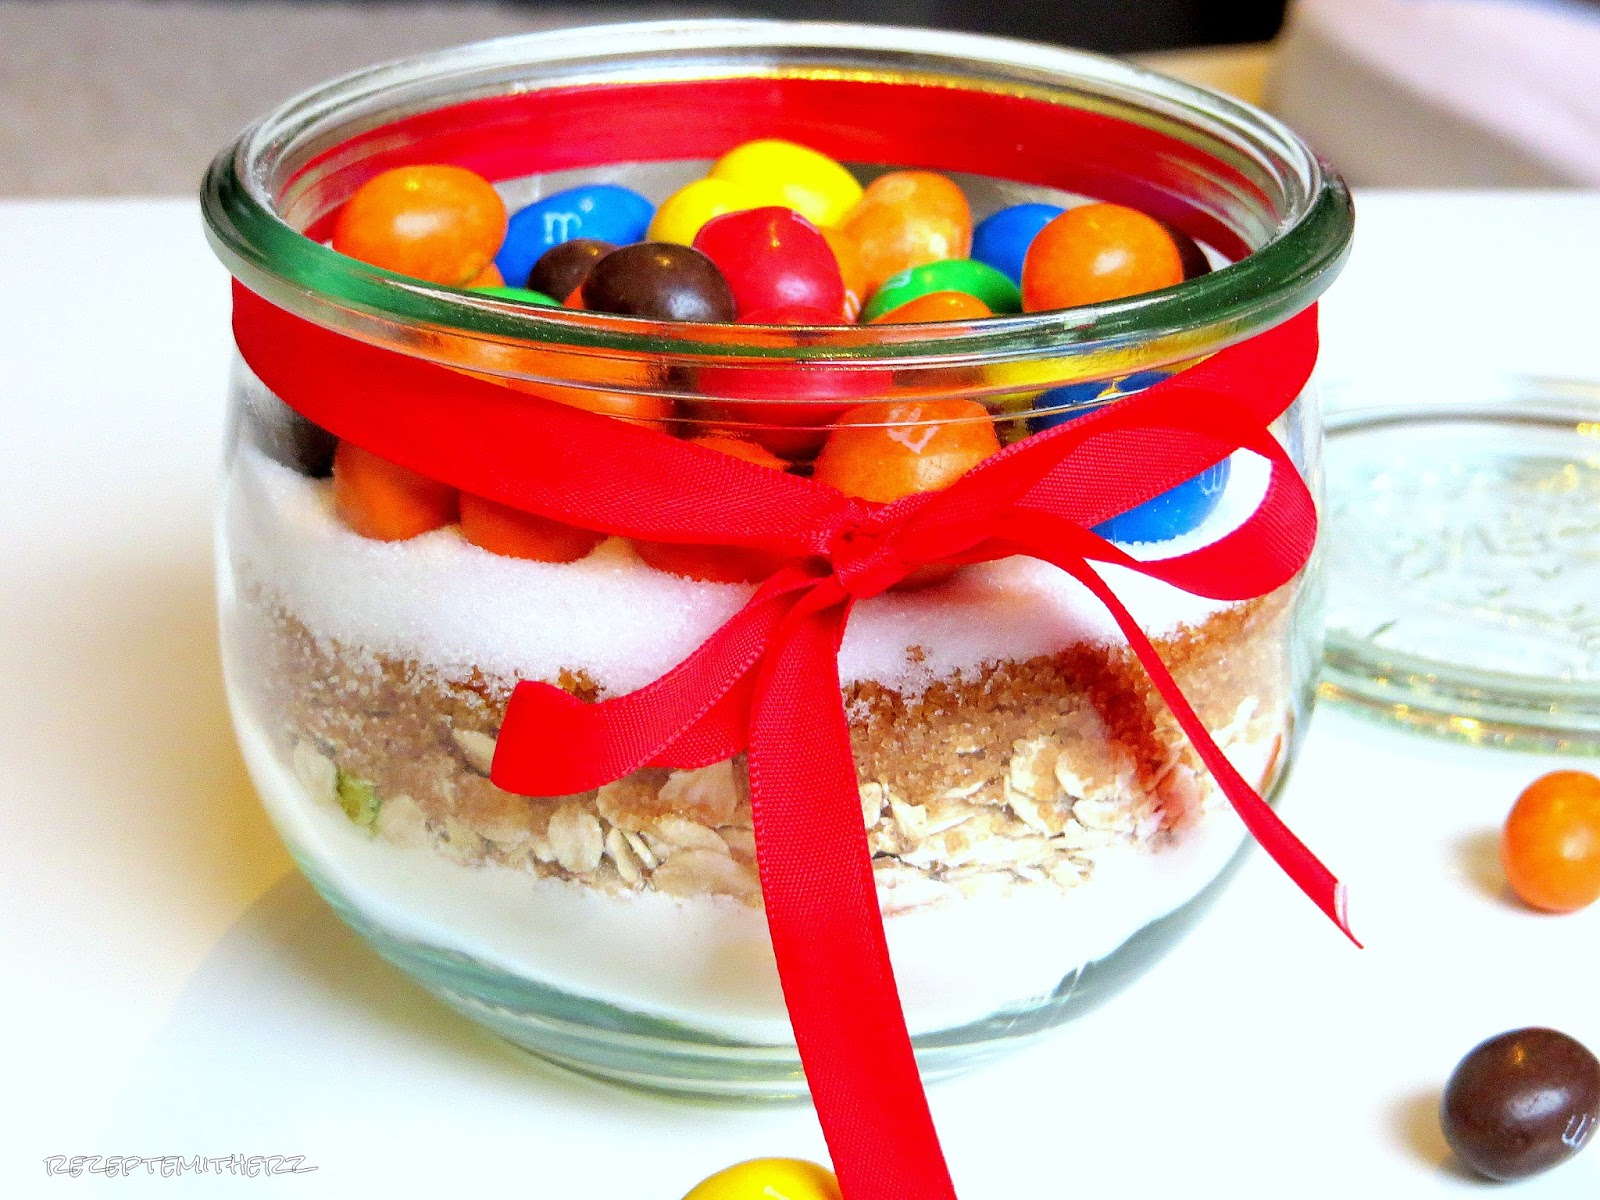 Extrem Backmischung im Glas: Cookies mit M & Ms ♡ NY37